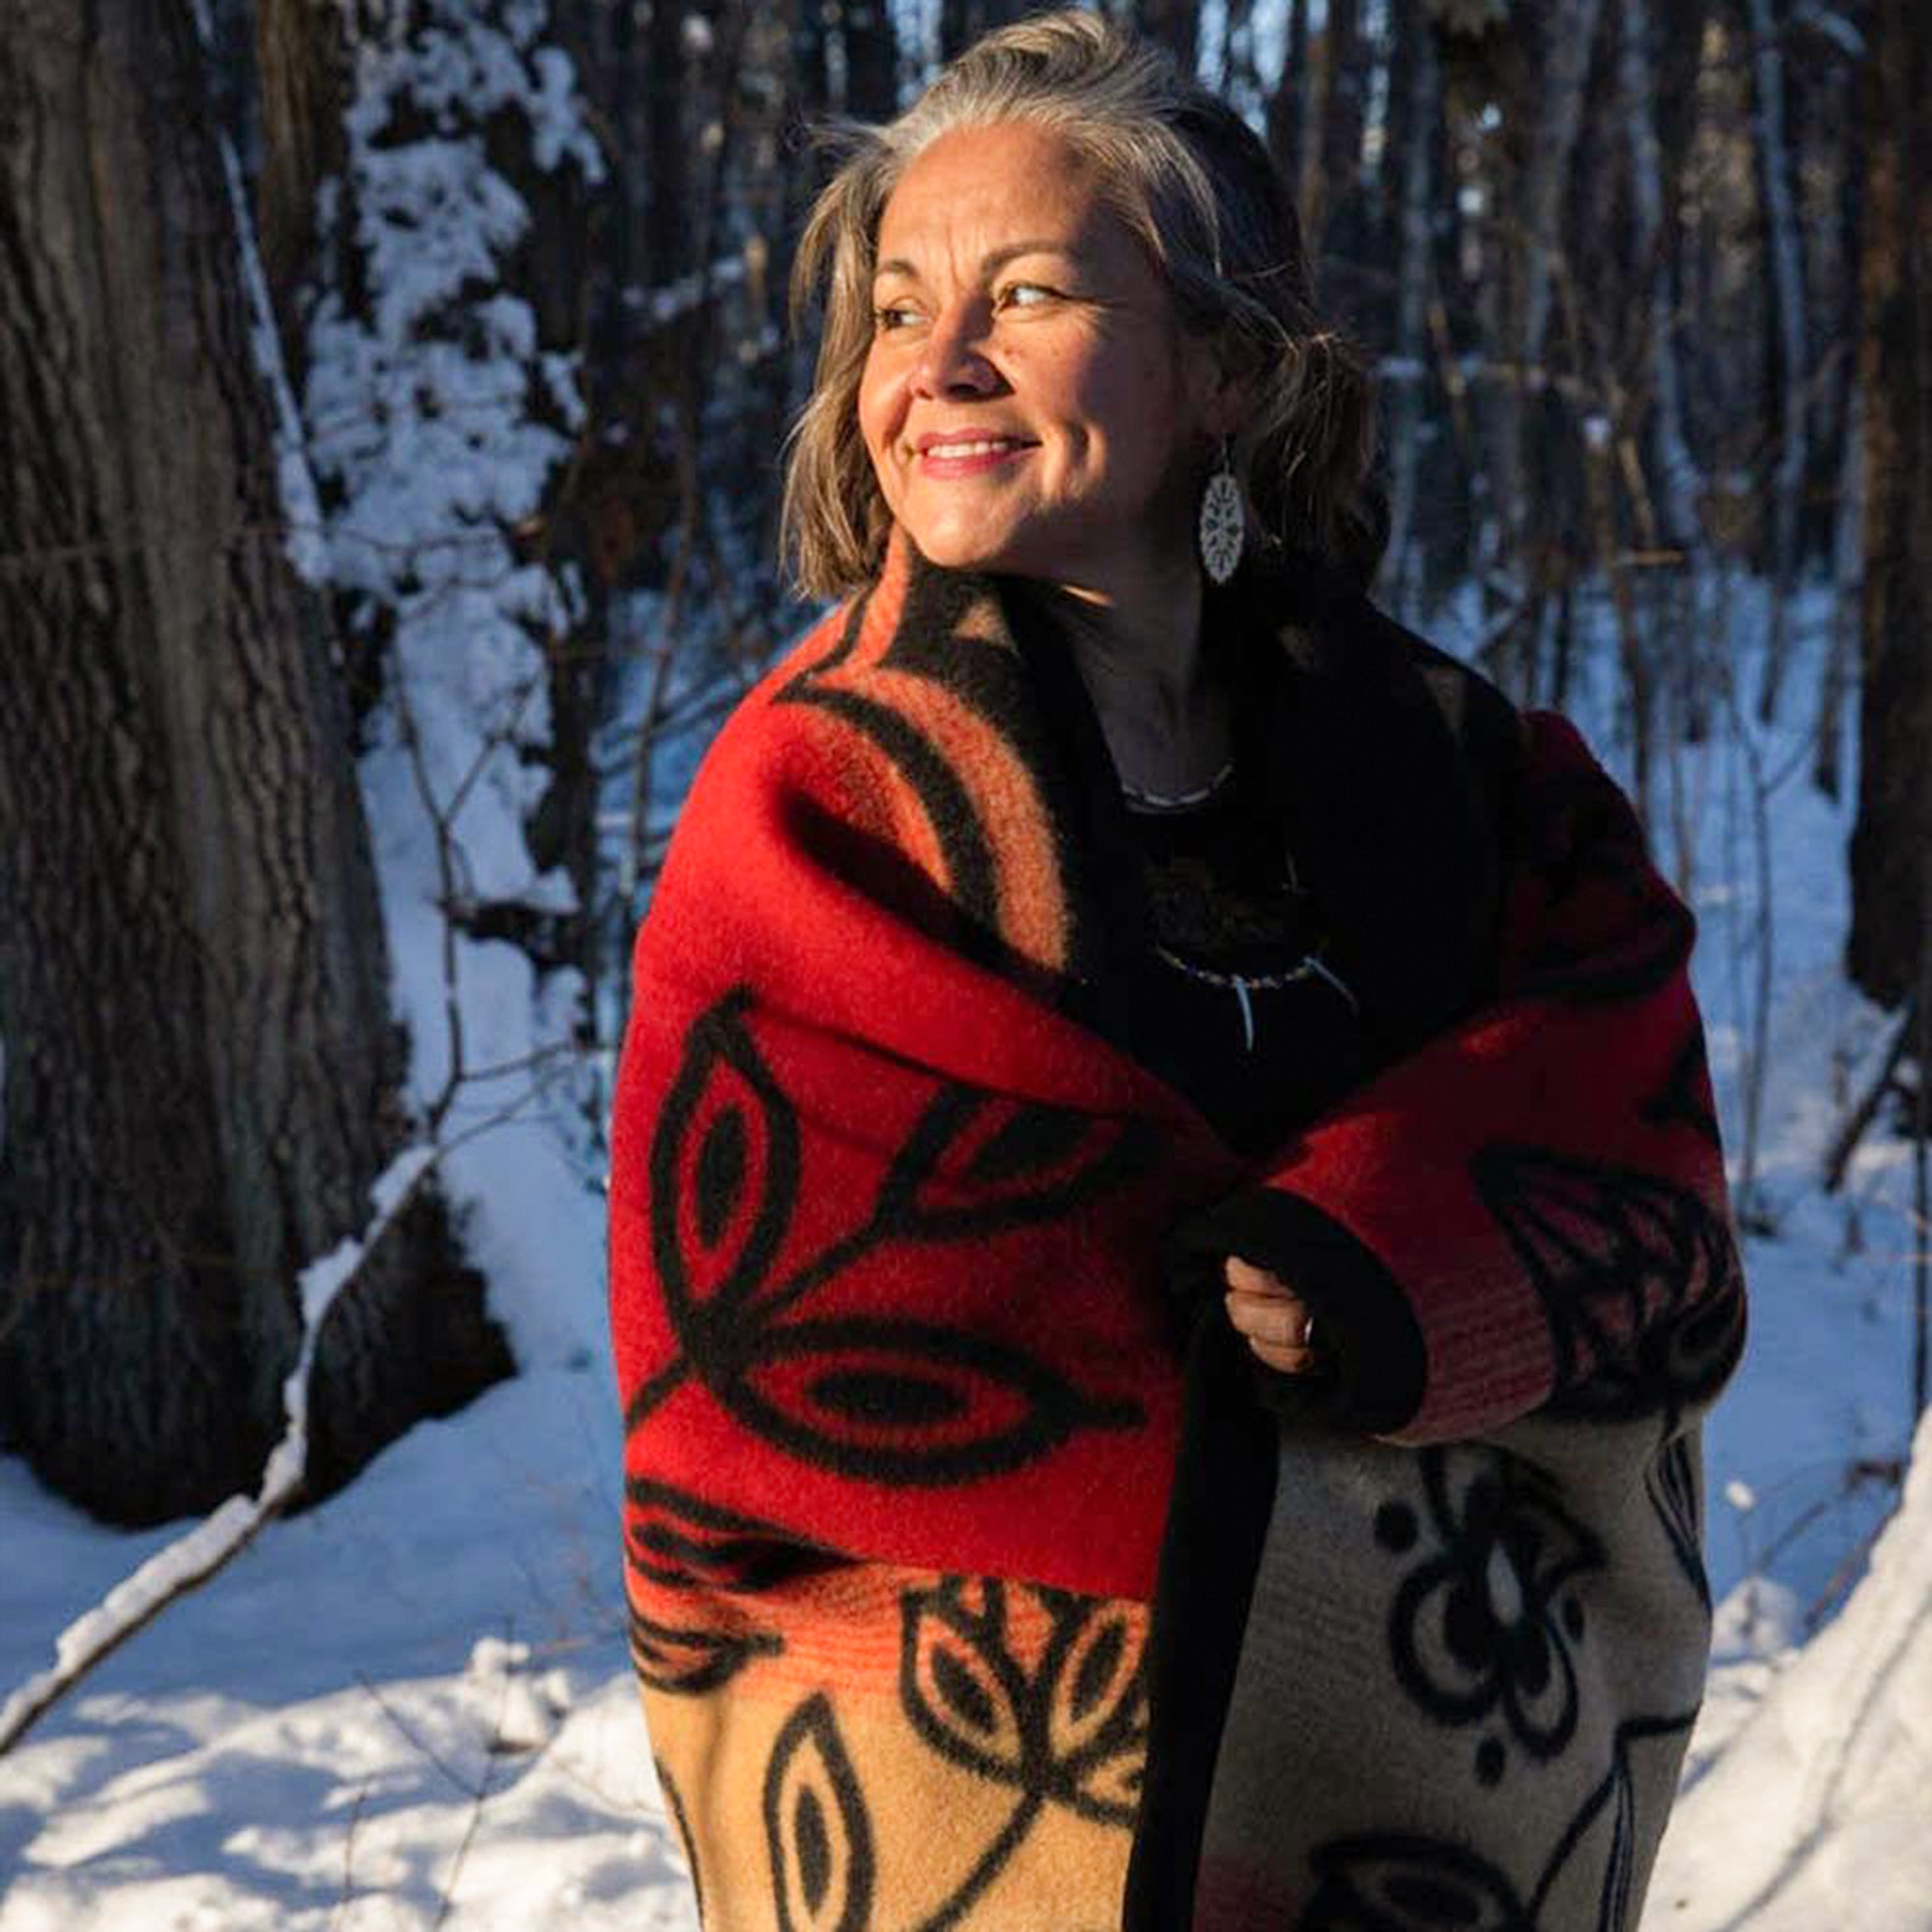 Anishinaabe-arts-entrepreneur-Sarah-Agaton-Howes-stands-in-snow-wrapped-in-black-and-red-renewal-wool-blanket-and-oval-floral-birch-bloom-earrings